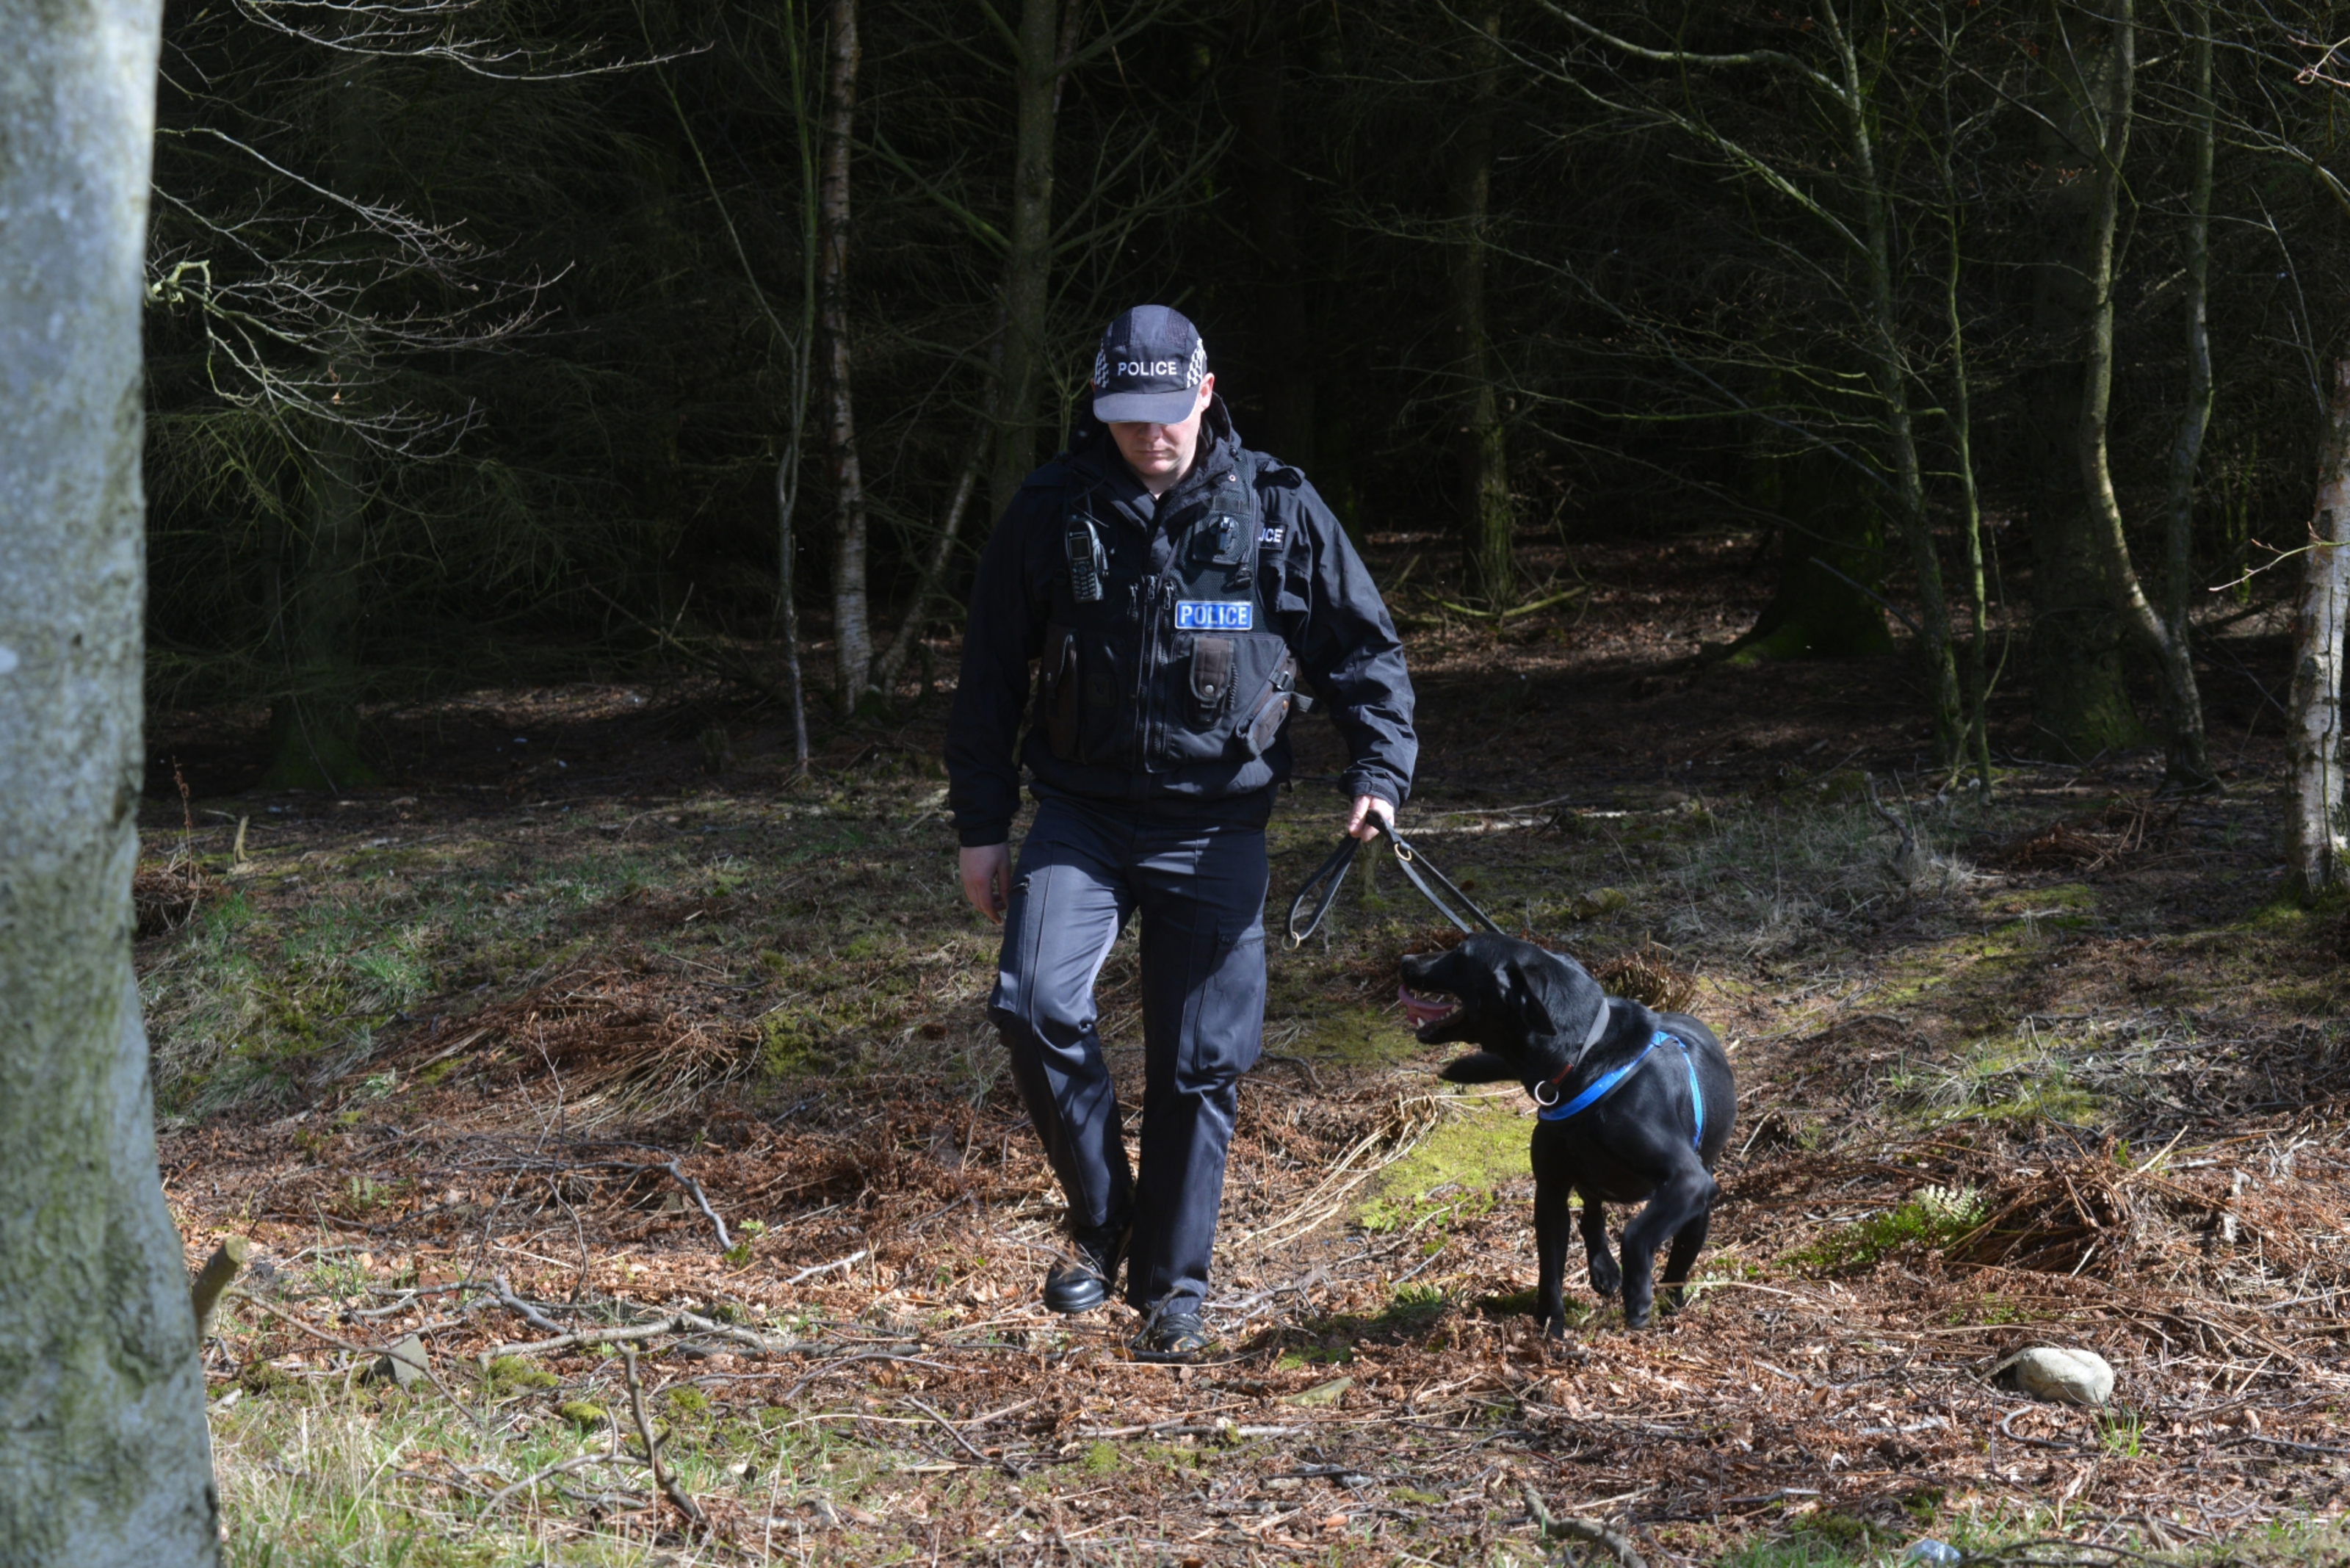 A specially trained police dog searches the woods with his handler.